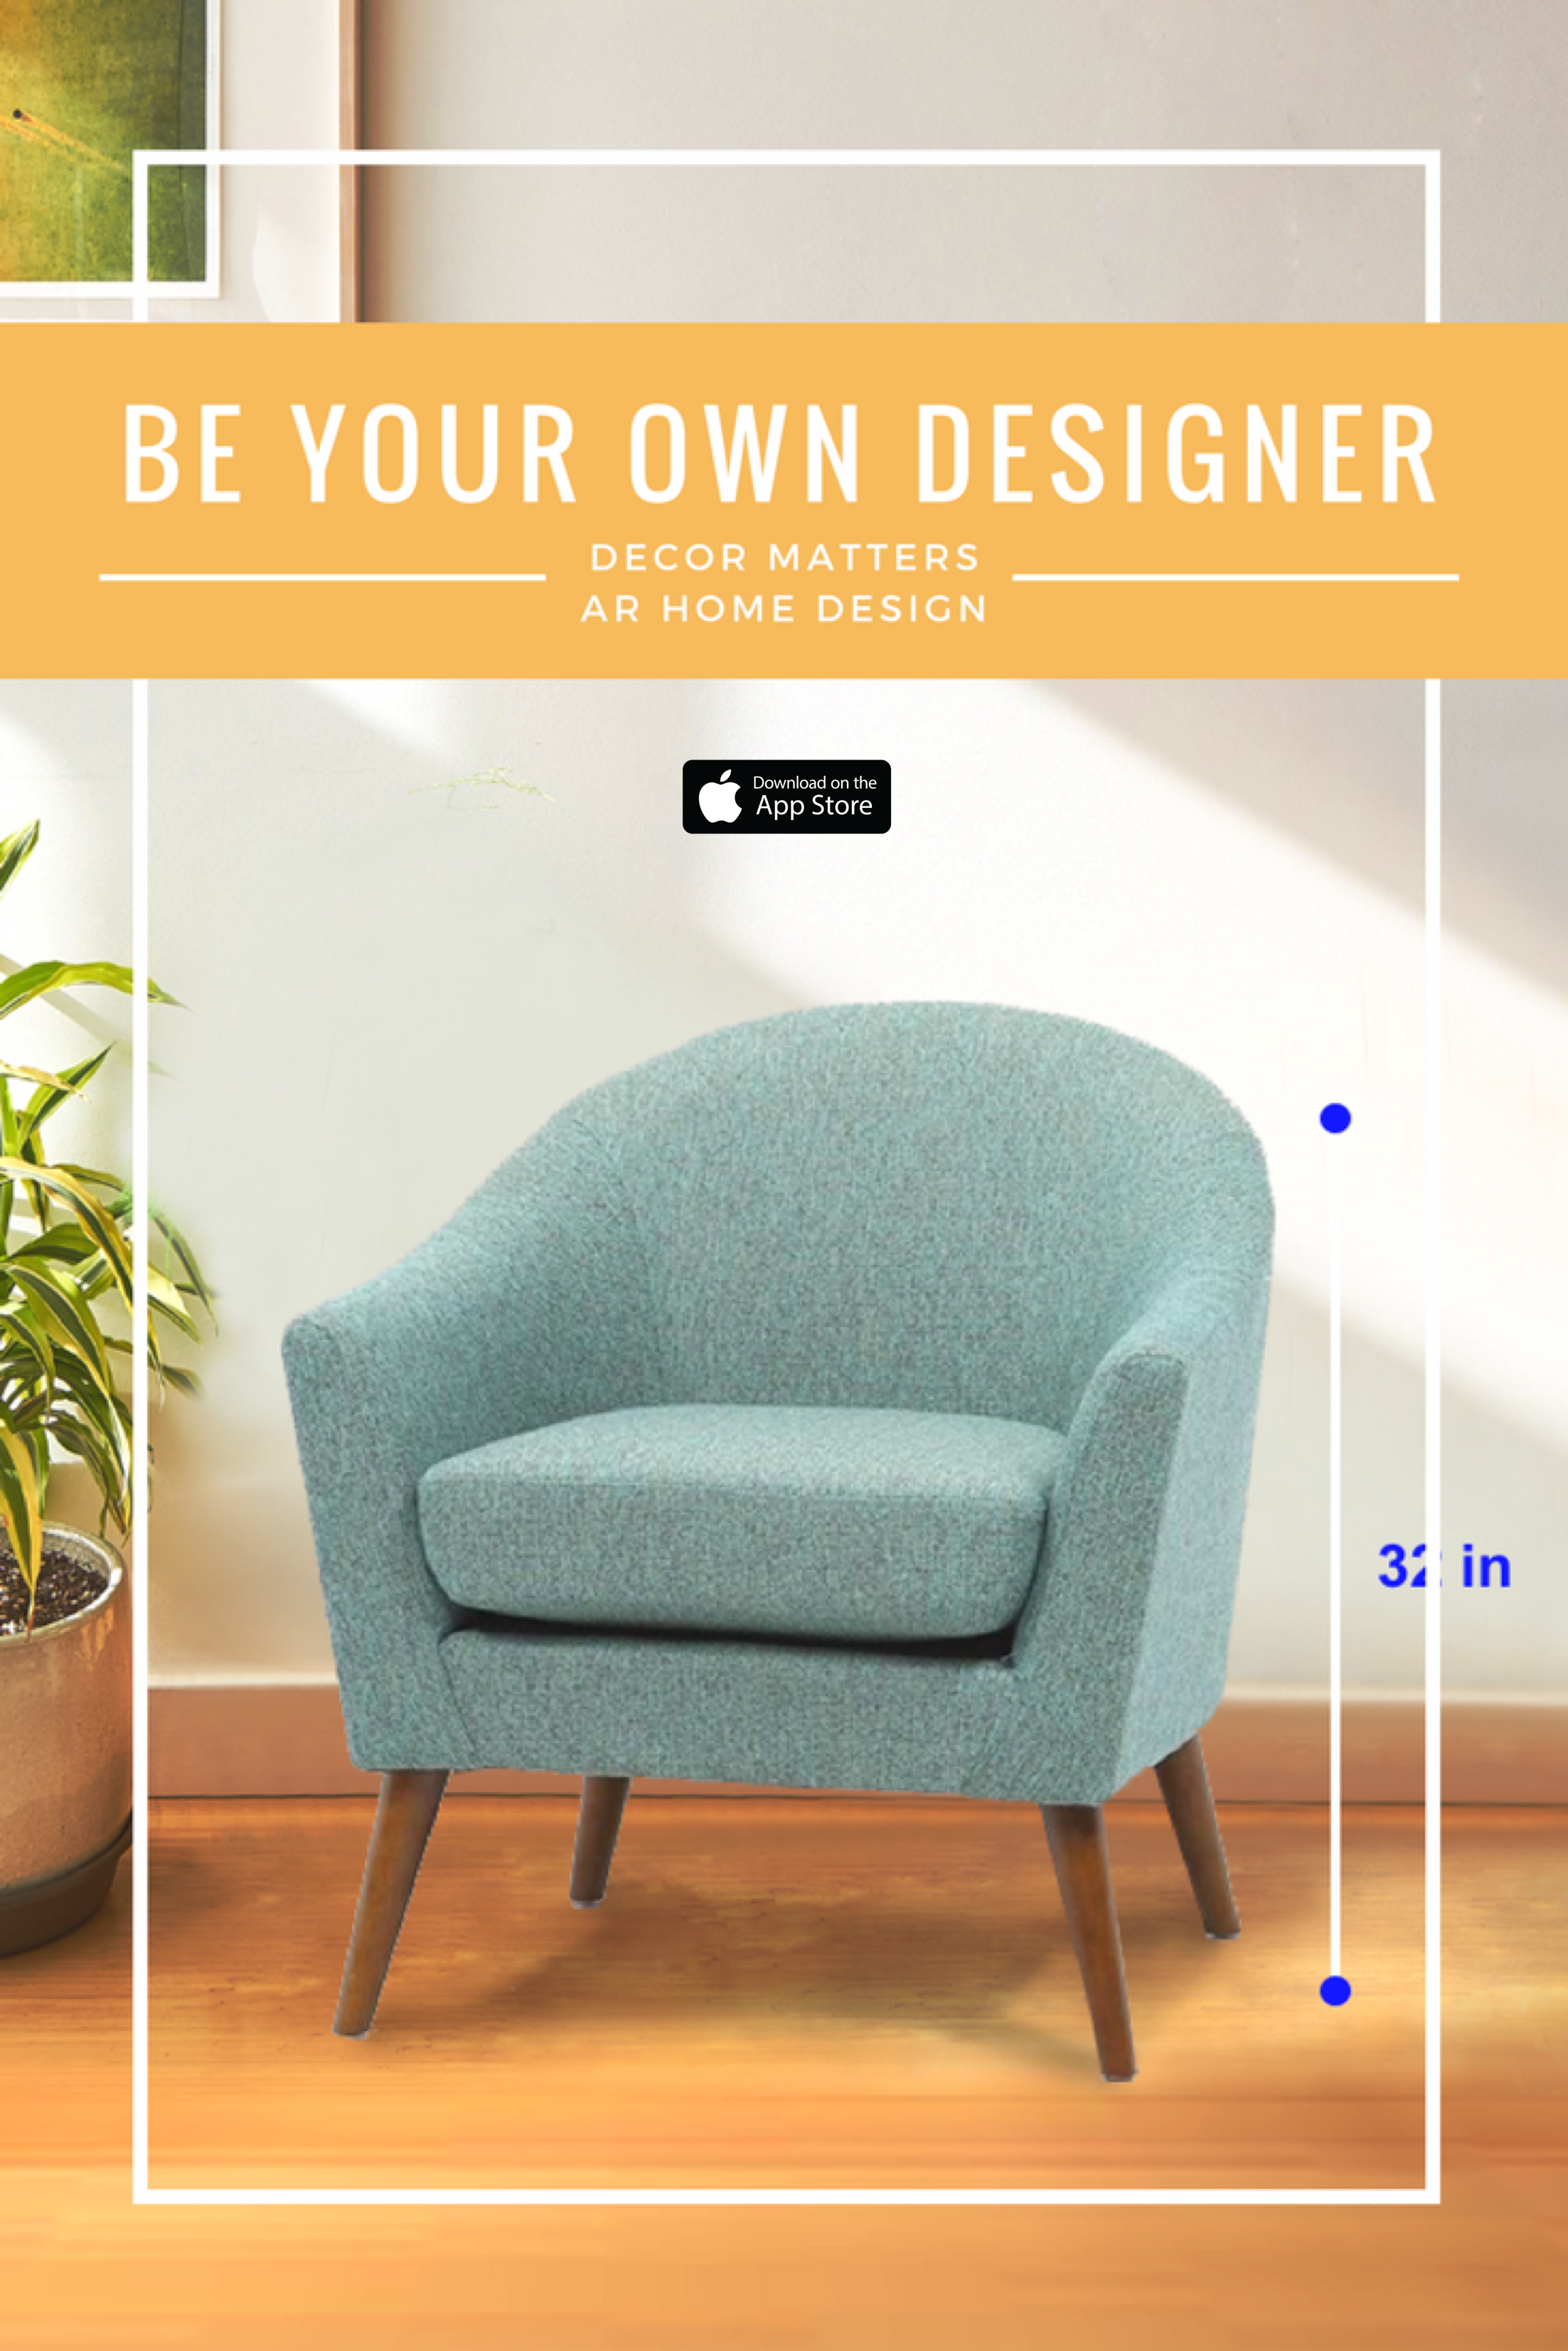 Merveilleux Be Your Own Designer! Design With Camera, View Furniture In Your Room  Before Buying